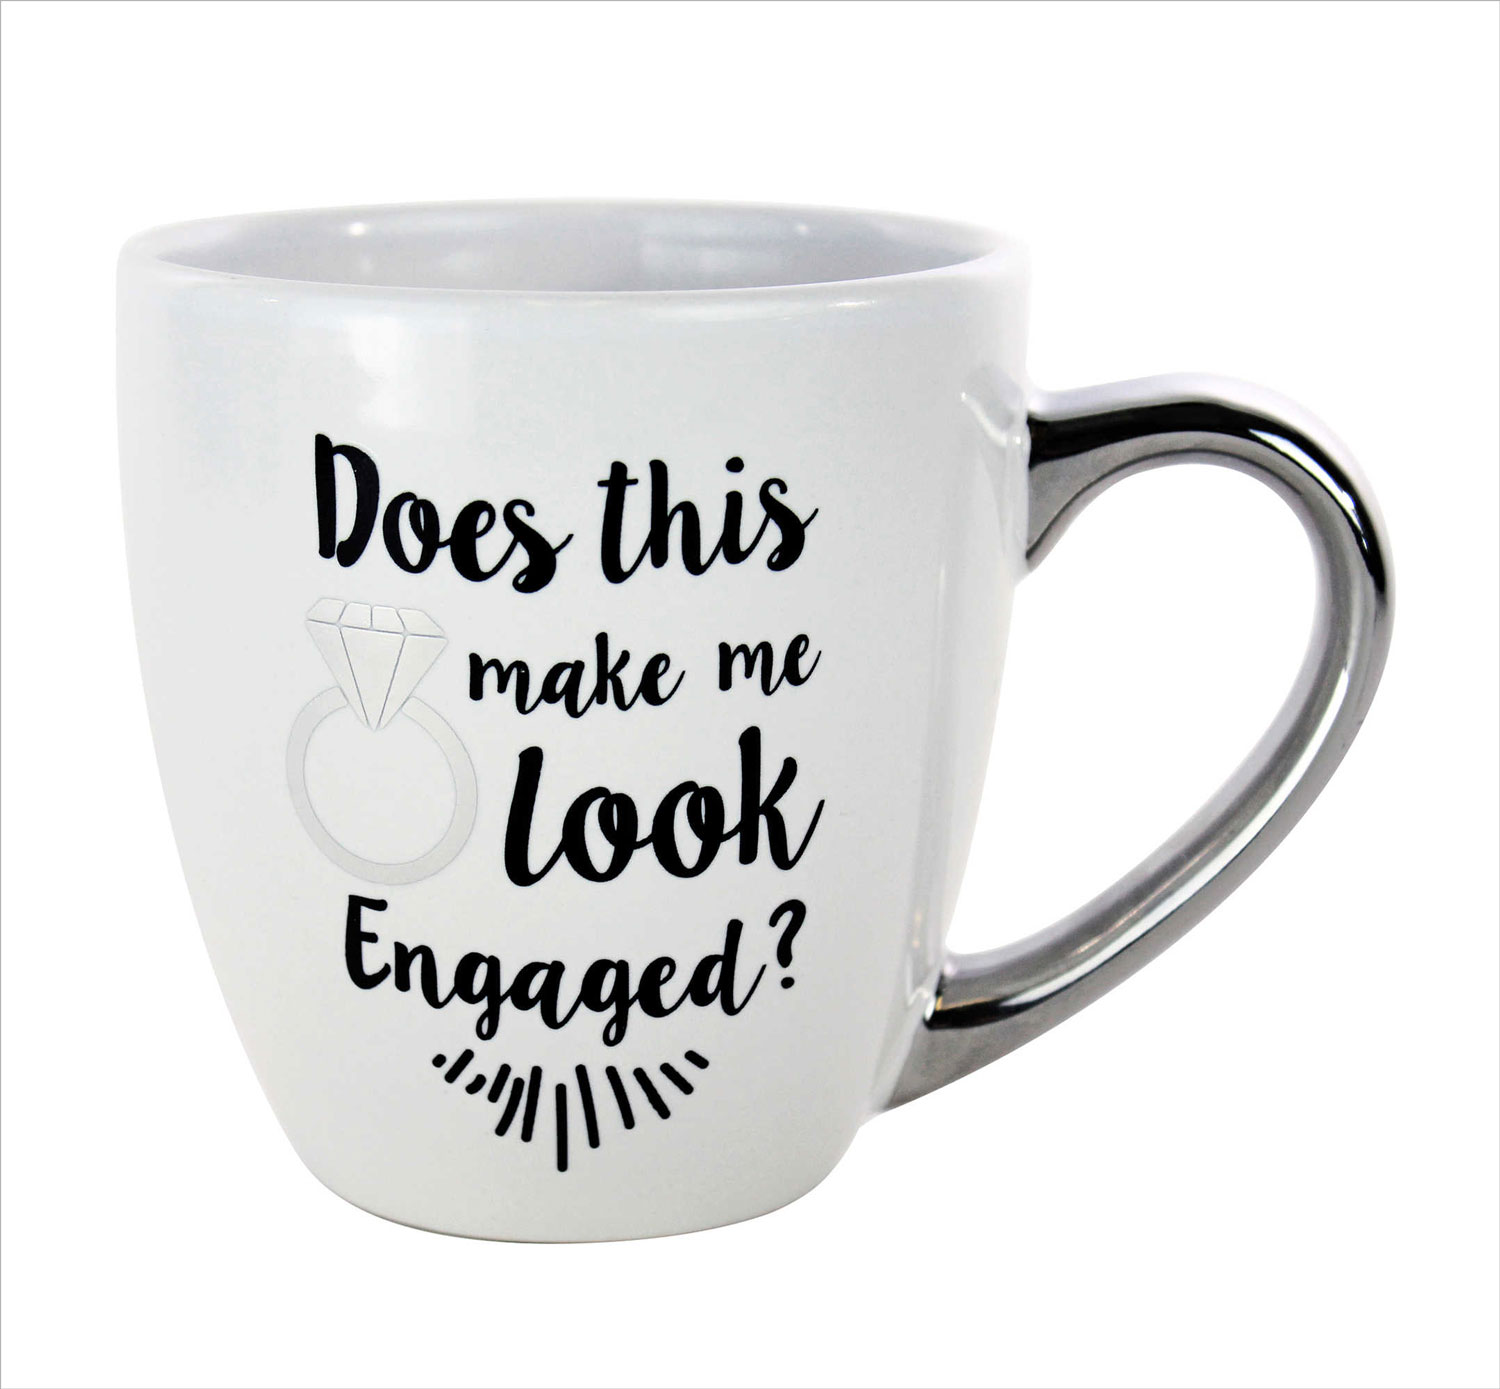 Engagement gift idea engaged friend does this ring make me look engaged coffee mug